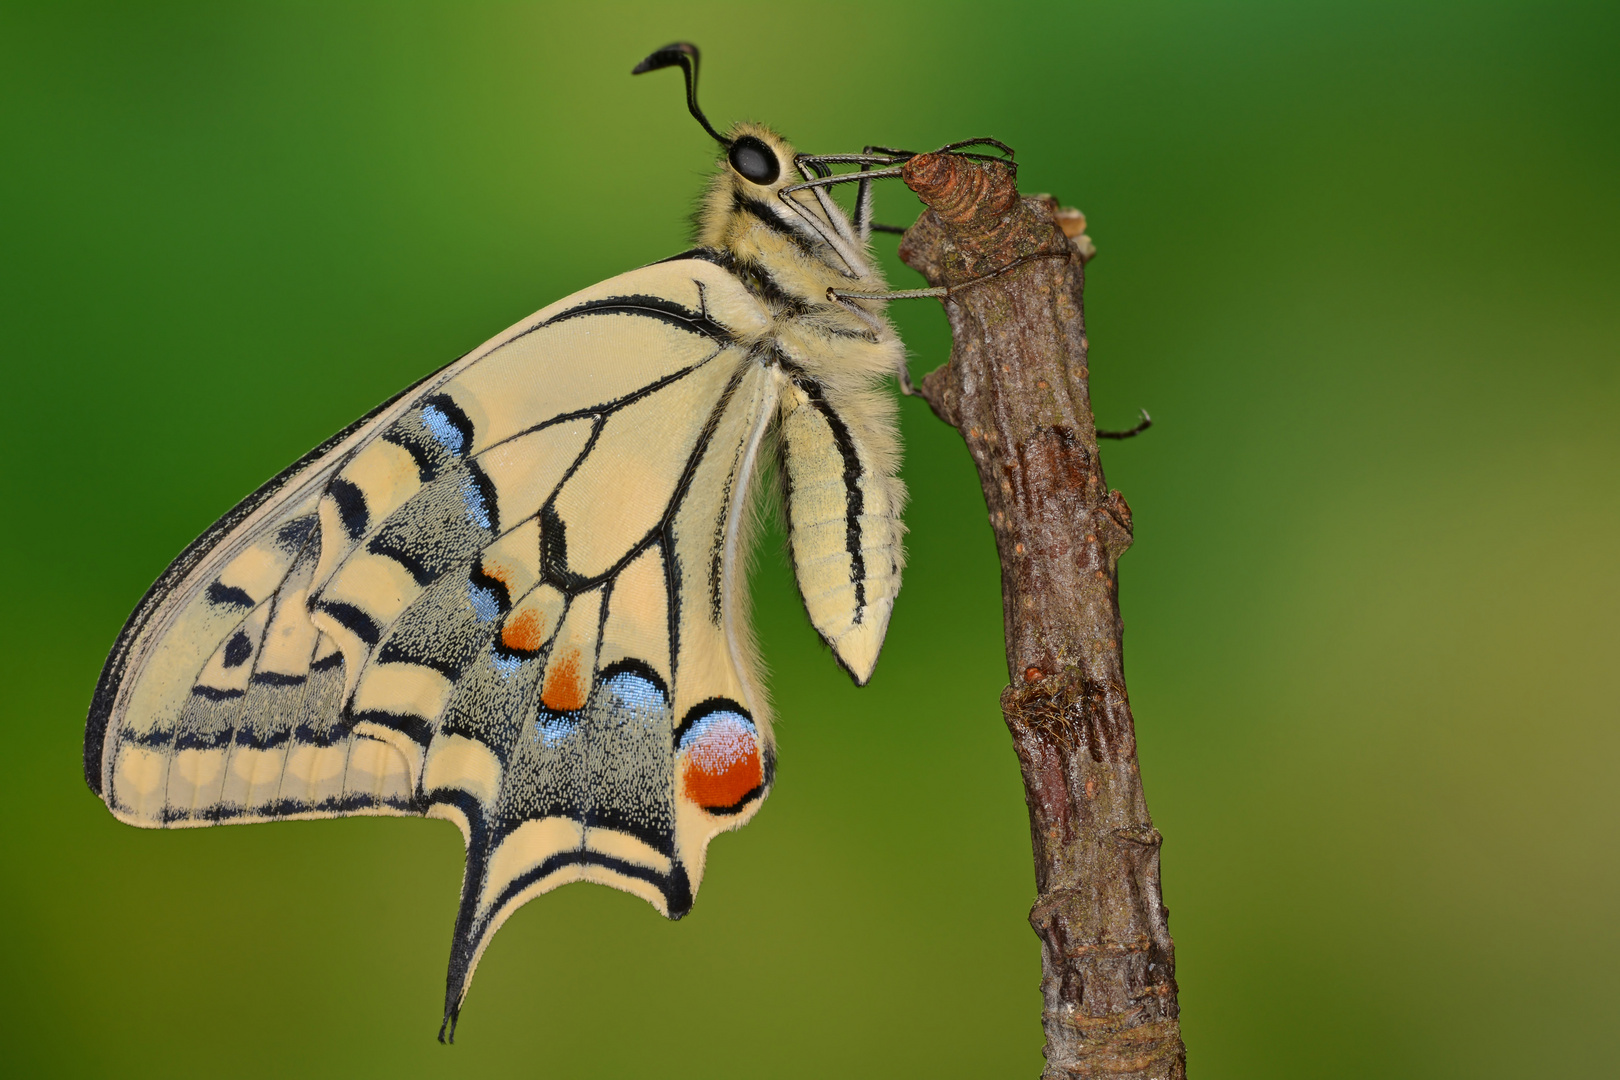 Papilio machaon ruettimanni